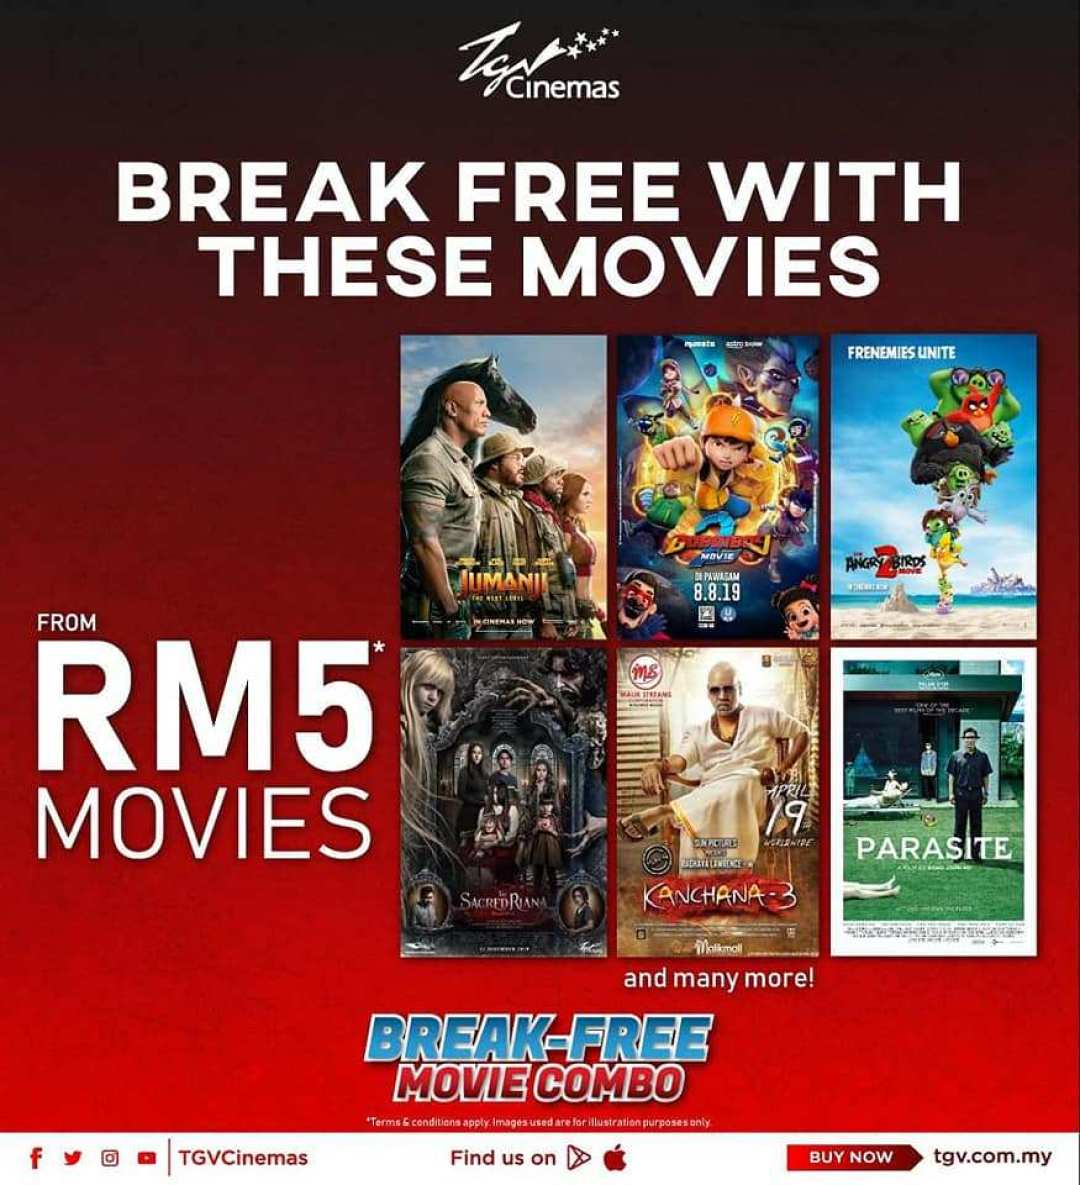 TGV Cinemas offers movie reruns from RM 5.00 onwards